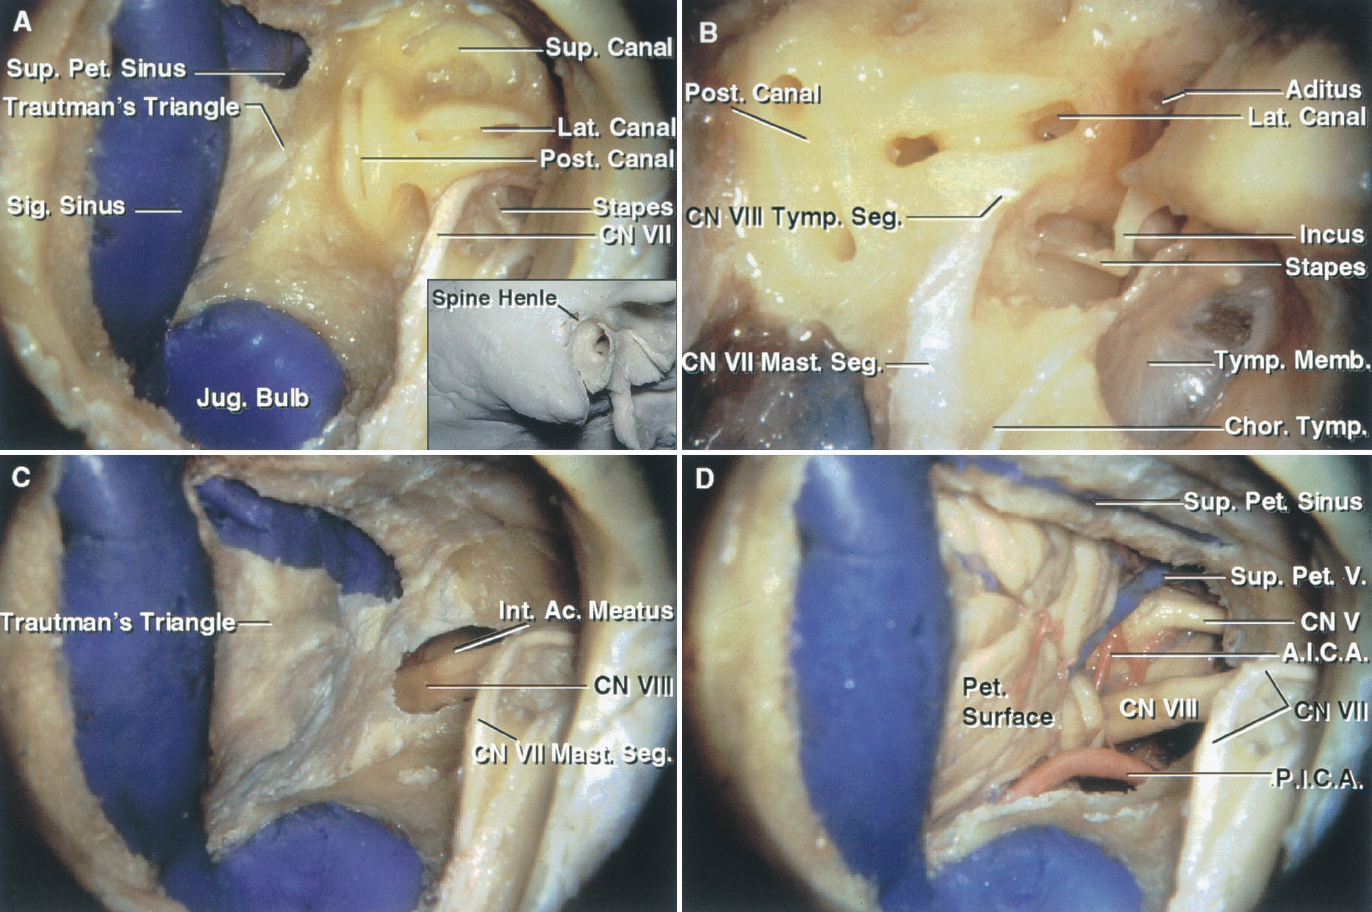 FIGURE 8.6. A–D. Translabyrinthine exposure. A, the insert shows the site of the exposure directed through the mastoid. The spine of Henley at the posterosuperior margin of the external meatus is a superficial landmark that approximates the deep site of the lateral semicircular canal and the tympanic segment of the facial nerve. The mastoidectomy has been completed. The superior petrosal and sigmoid sinuses, the jugular bulb, and the facial nerve are usually skeletonized in the approach, leaving a thin layer of bone over them. The semicircular canals, which are located in the cortical bone medial to the cancellous mastoid and the mastoid antrum, have been exposed. The dura between the sigmoid and superior petrosal sinuses, the jugular bulb, and the labyrinth, which faces the cerebellopontine angle, is referred to as Trautman's triangle. B, the mastoid antrum opens through the aditus into the epitympanic part of the tympanic cavity, which contains the upper part of the malleus and incus. The tympanic segment of the facial nerve passes between the lateral canal and the stapes in the oval window and then turns downward as the mastoid segment. The chorda tympani arises from the mastoid segment of the facial nerve and passes upward and forward along the deep surface of the tympanic membrane crossing the neck of the malleus. The incus, the head of which is located in the epitympanic area, has a long process that attaches to the stapes. C, the semicircular canals and vestibule have been removed and the dura lining the internal acoustic meatus has been opened to expose the vestibulocochlear nerve. D, the dura has been opened to expose the petrosal cerebellar surface and the structures in the cerebellopontine angle. Anatomic variants that limit the exposure include an anterior position of the sigmoid sinus, a high jugular bulb, or a low middle fossa plate. The jugular bulb may extend upward into the posterior wall of the internal acoustic meatus and be encountered as the pos